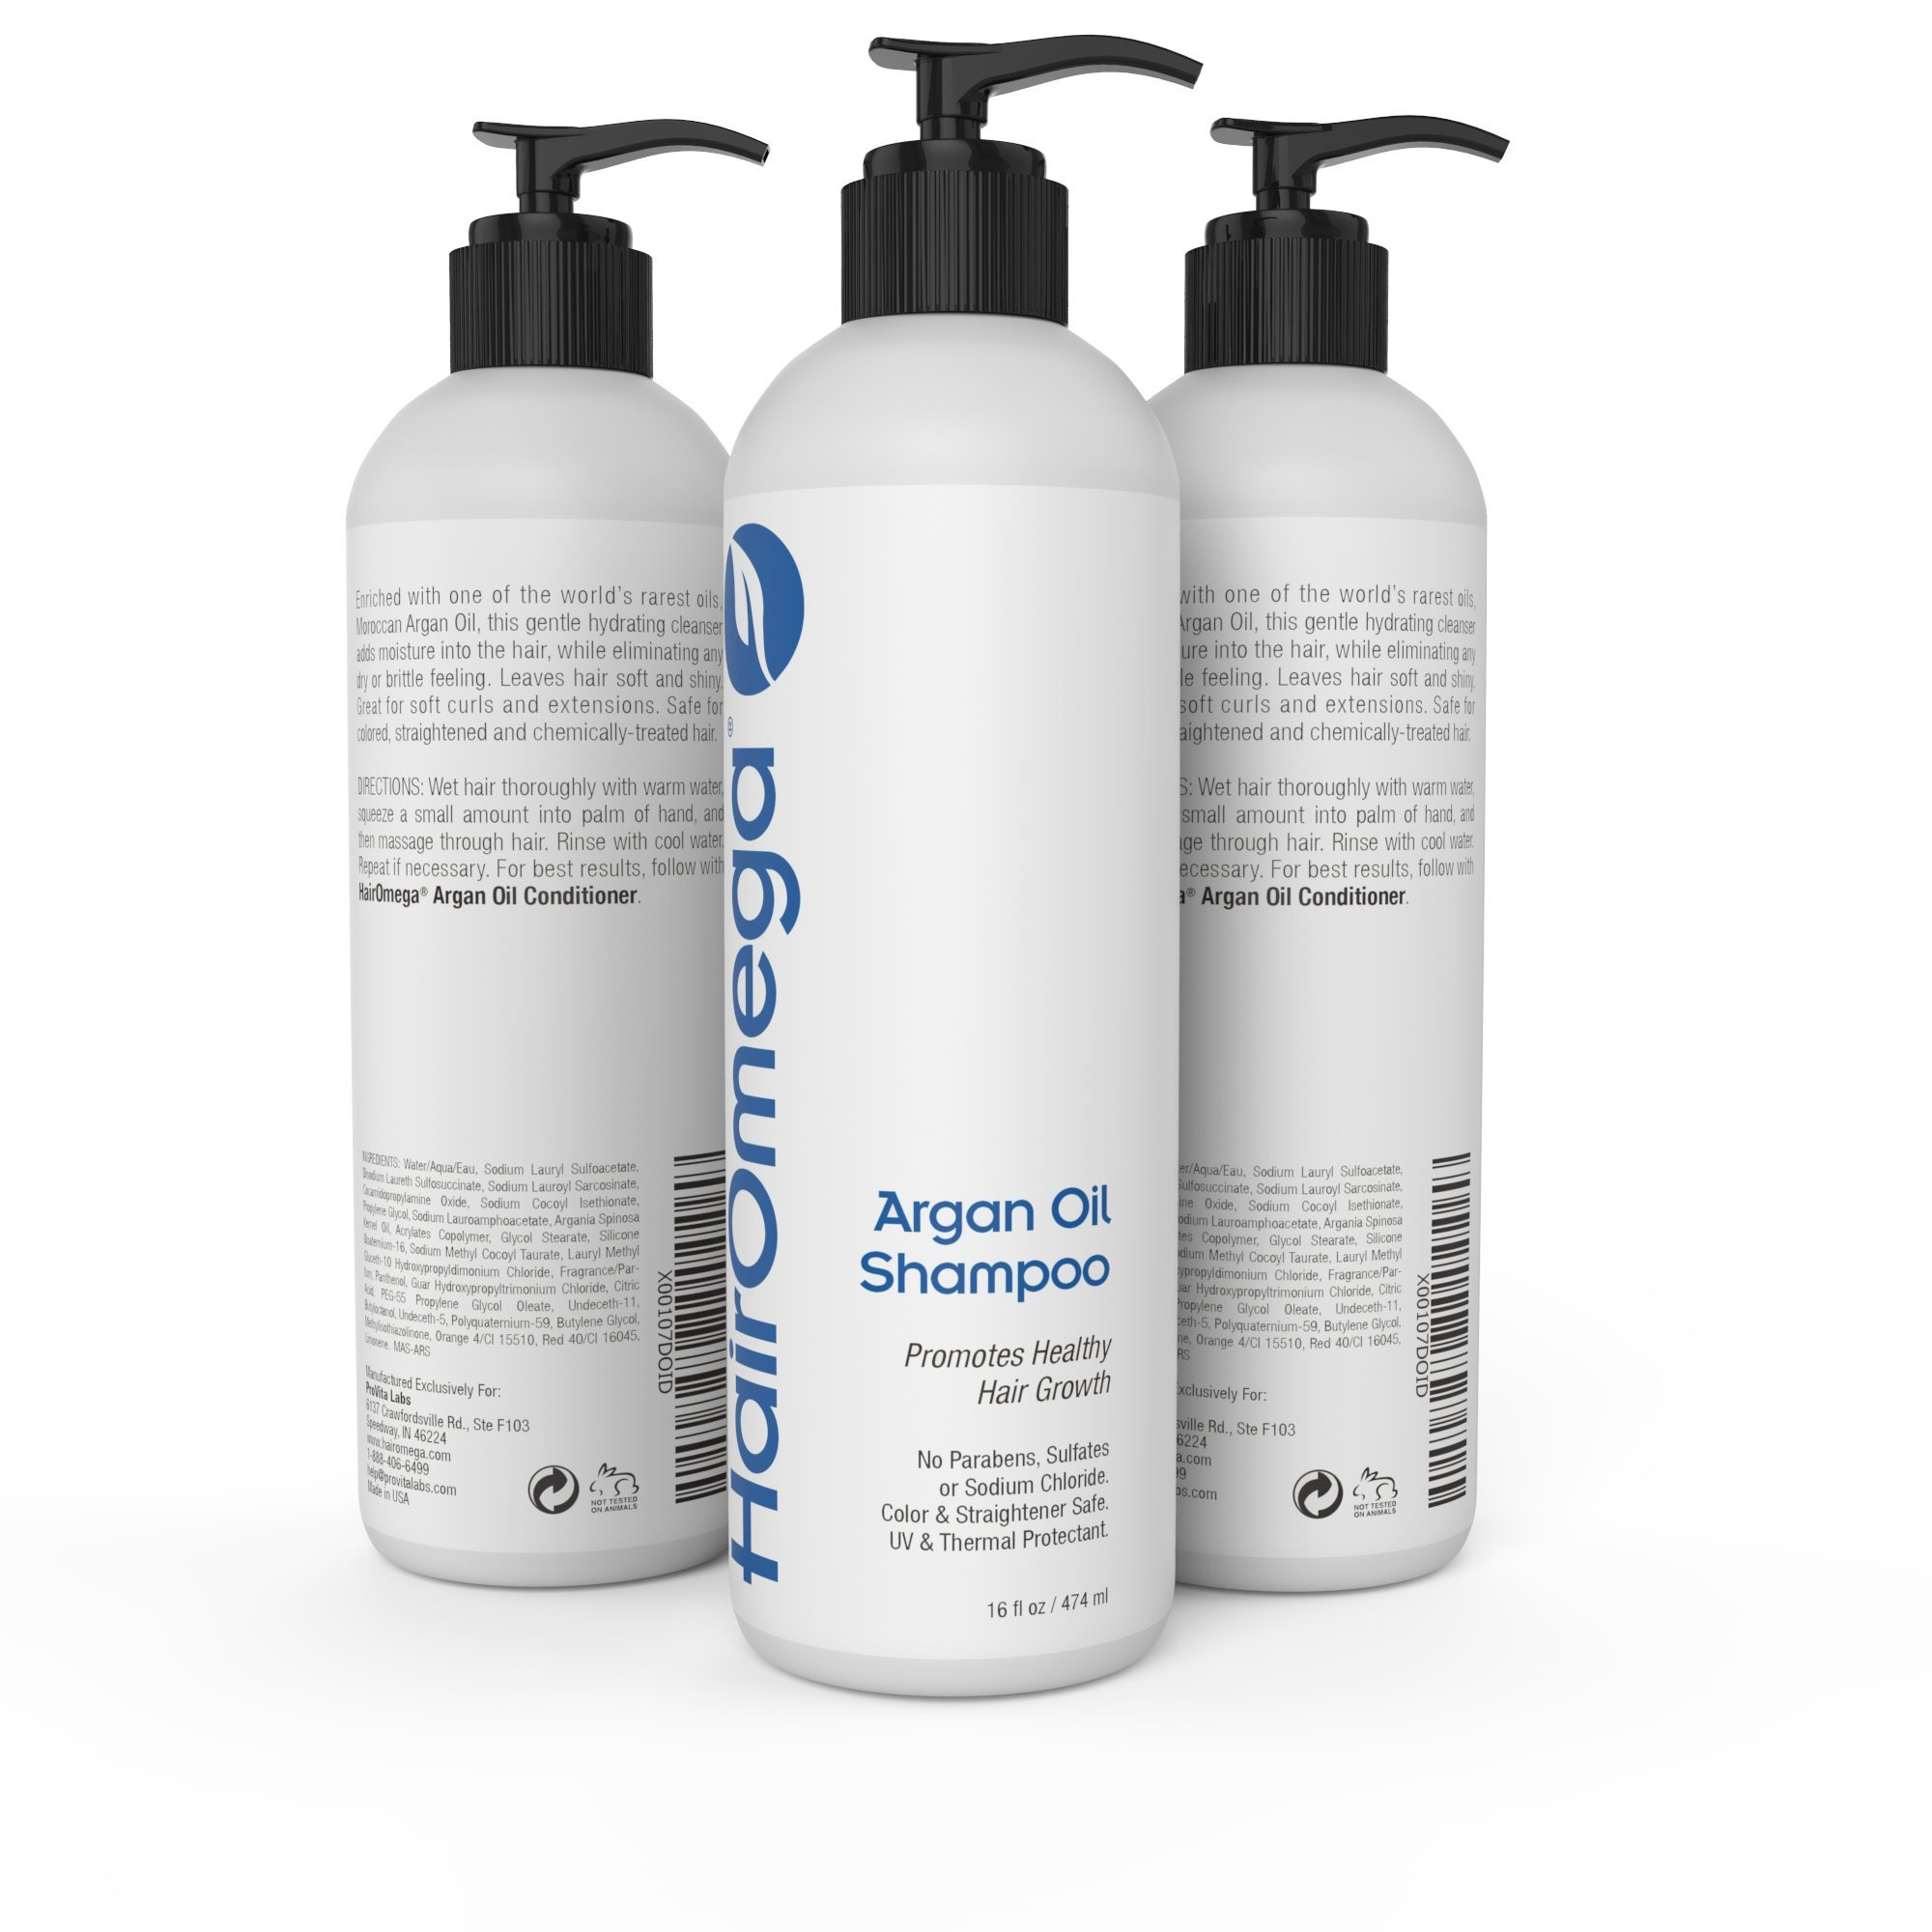 Dr. Formulas Hairomega Argan Oil Infused Restorative Shampoo - Moisturizes Dry Scalps and Supports Healthier Hair Growth